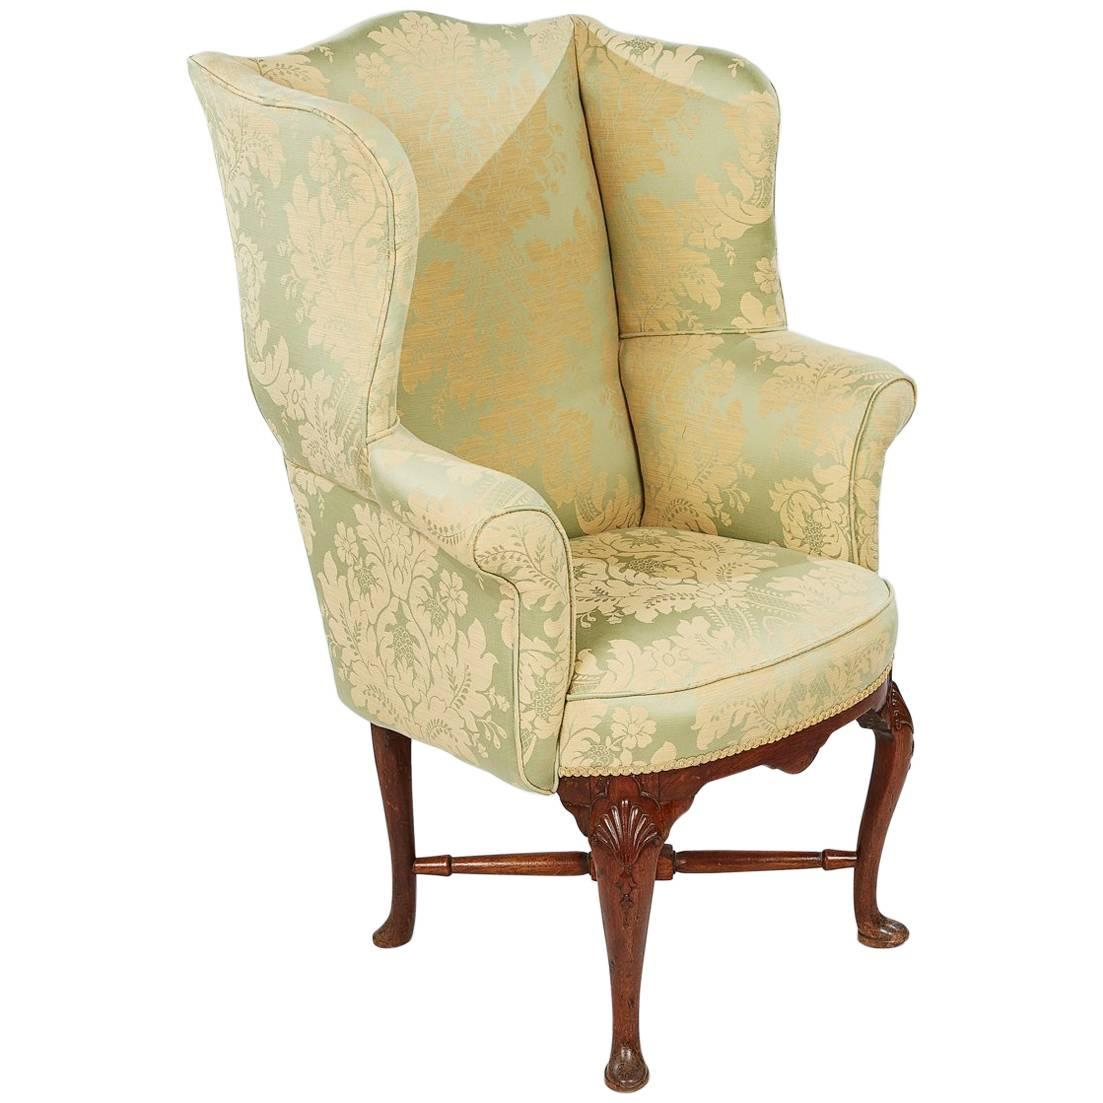 18th century mahogany fully upholstered wing chair 1